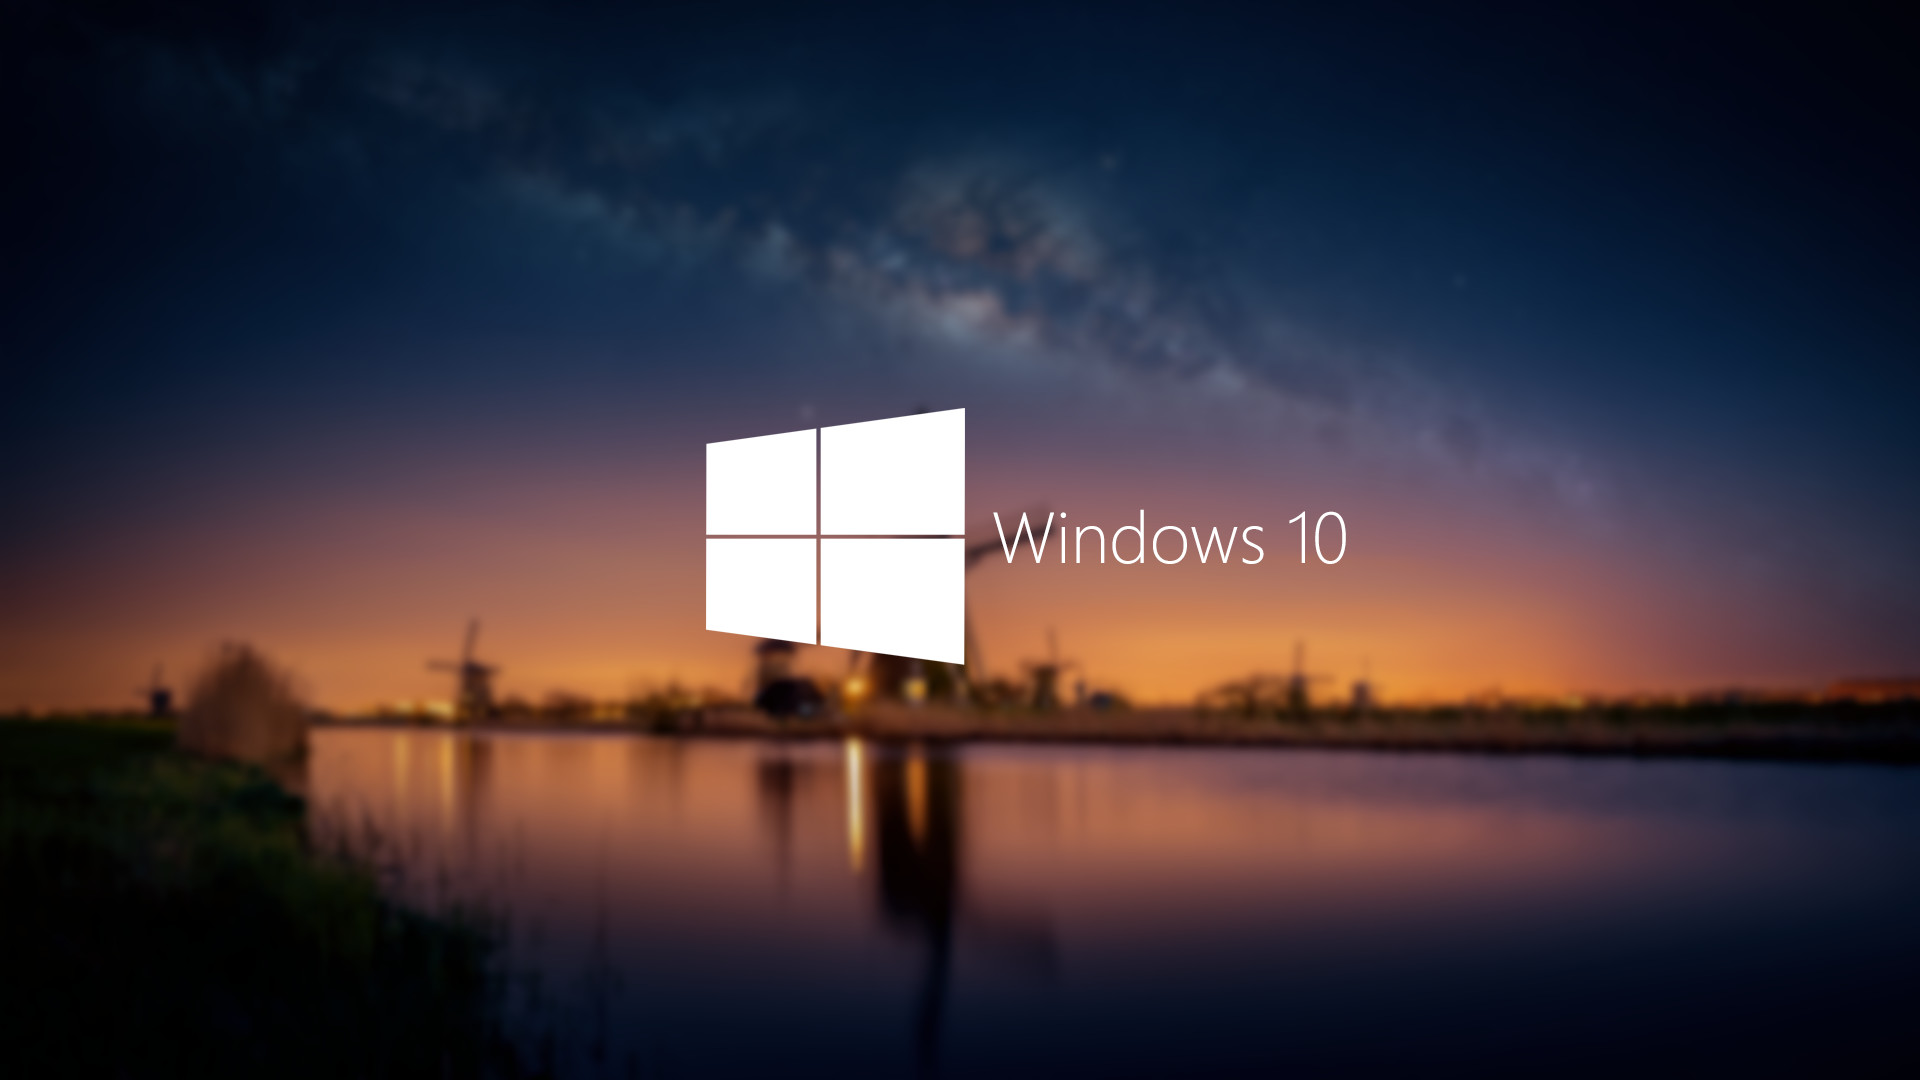 hd desktop wallpapers windows 10 (80+ images)